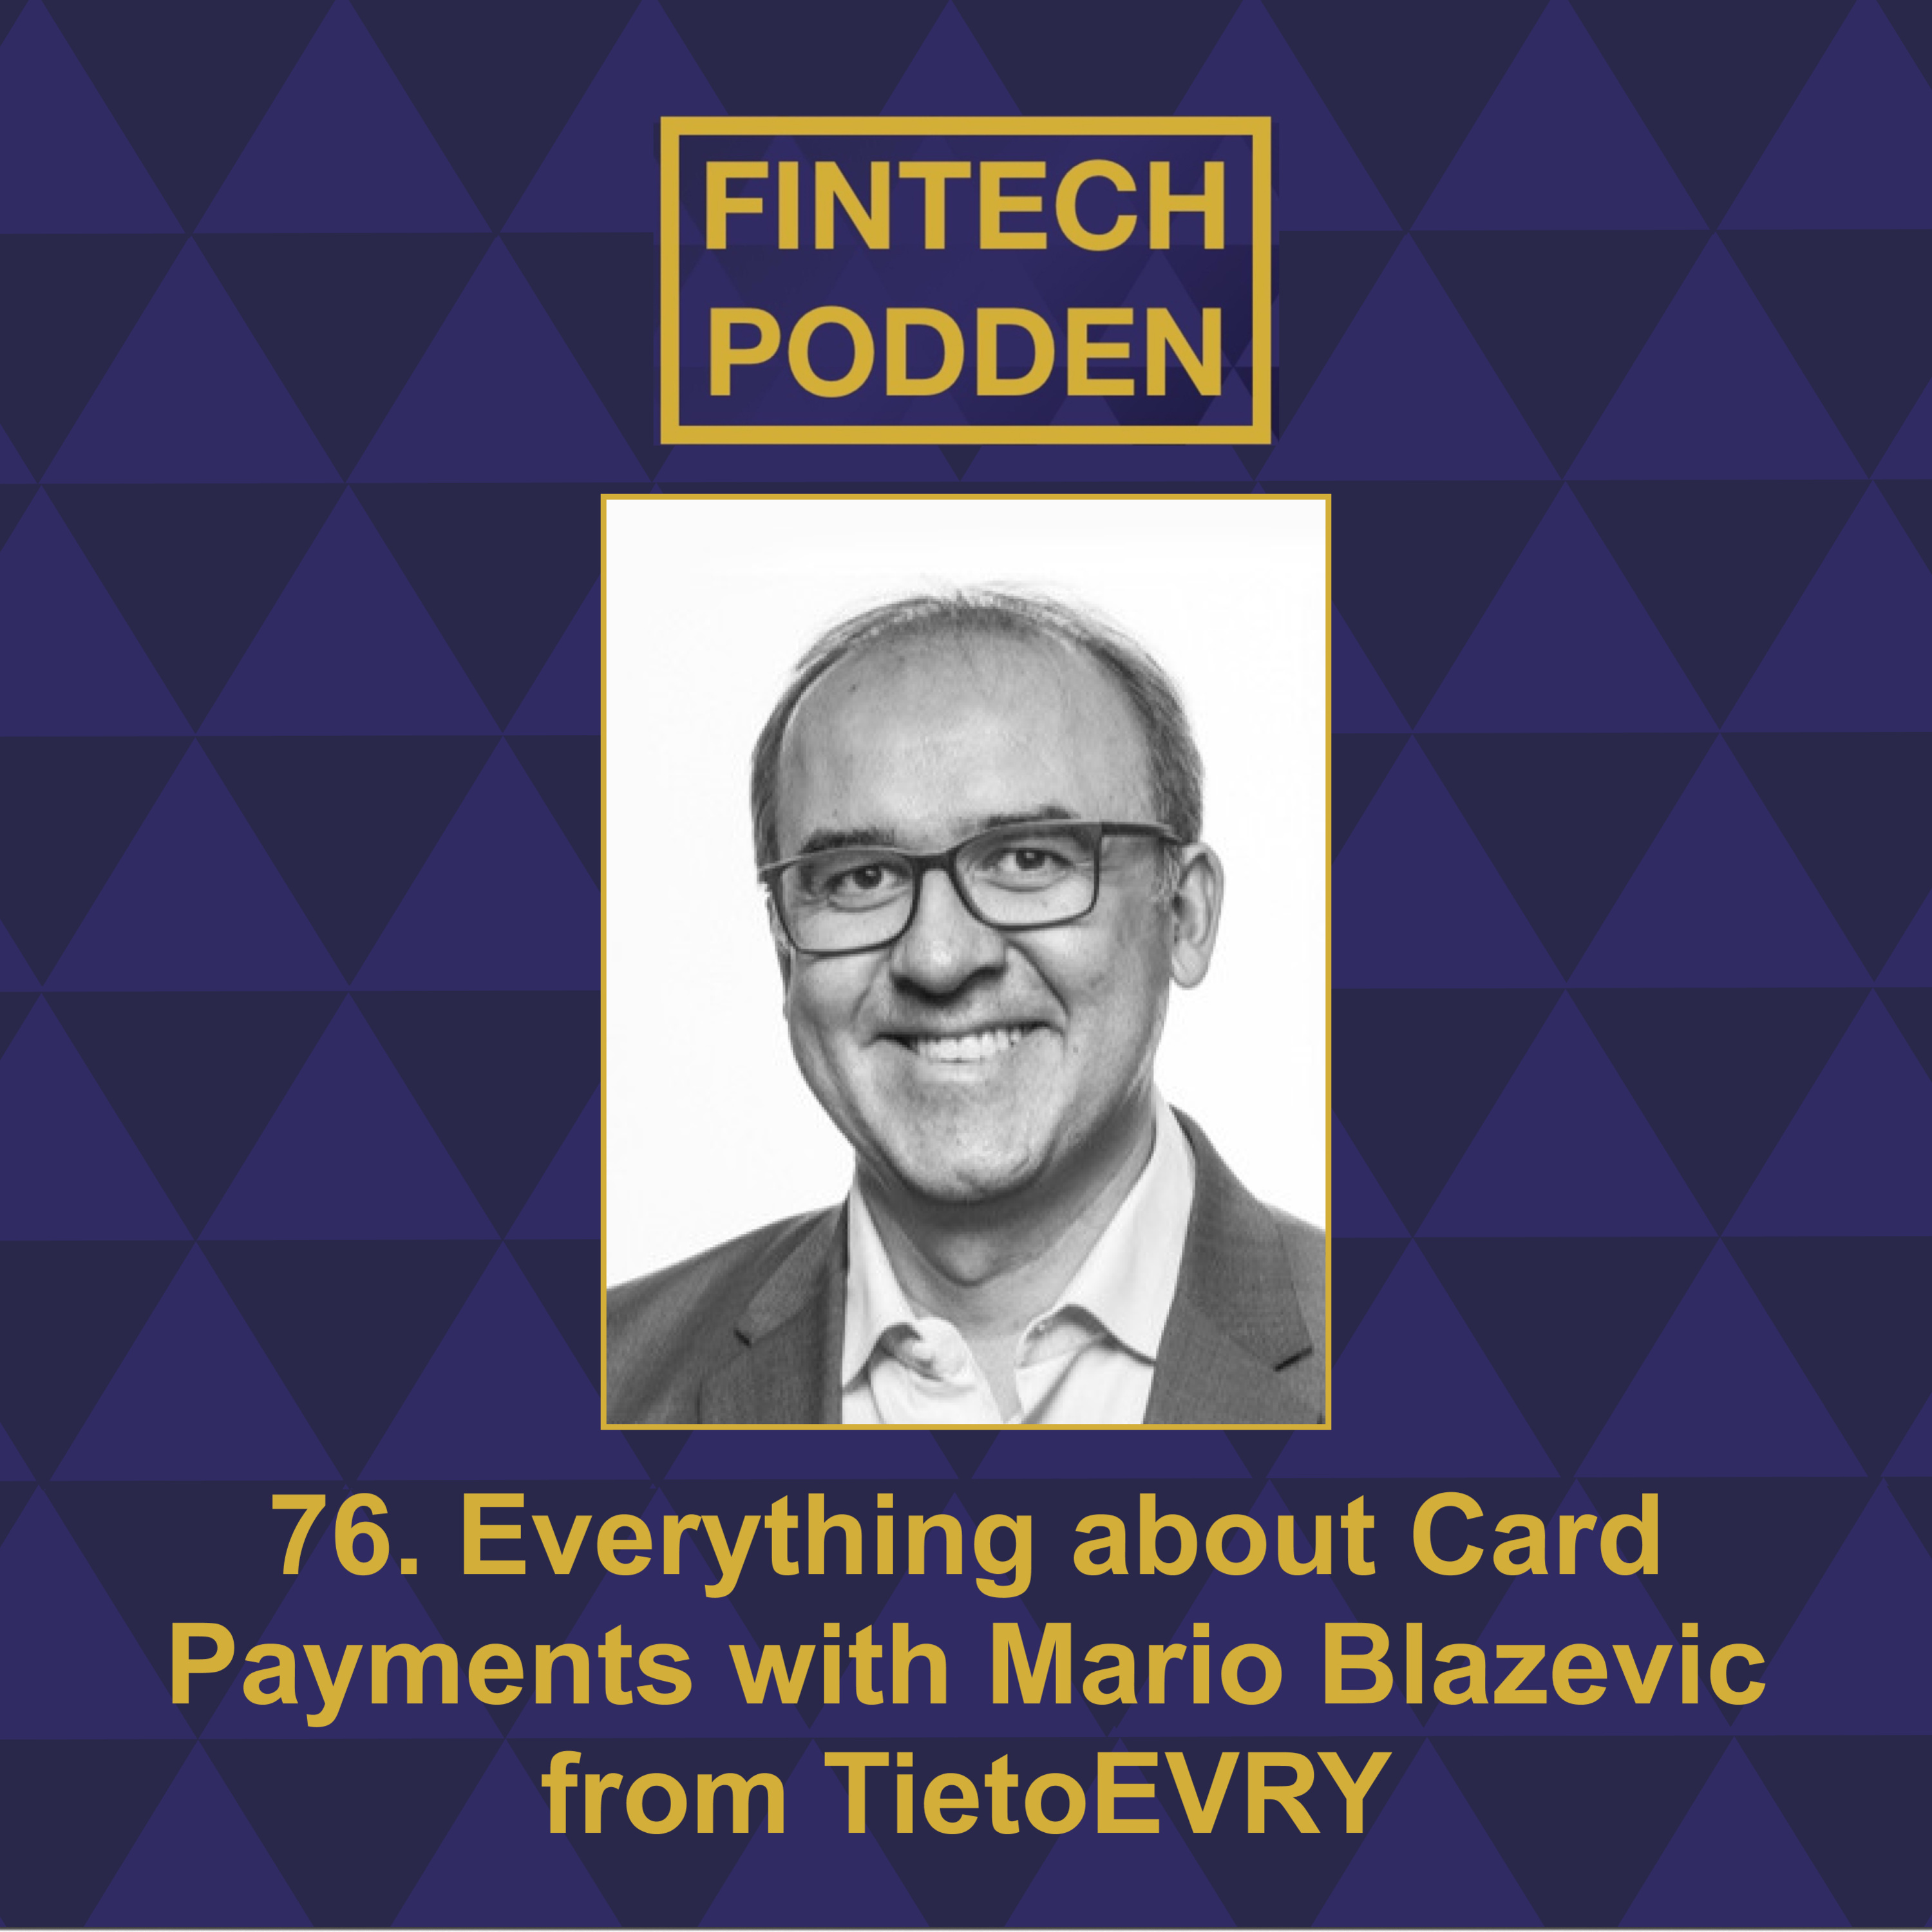 76. Everything about Card Payments with Mario Blazevic from TietoEVRY